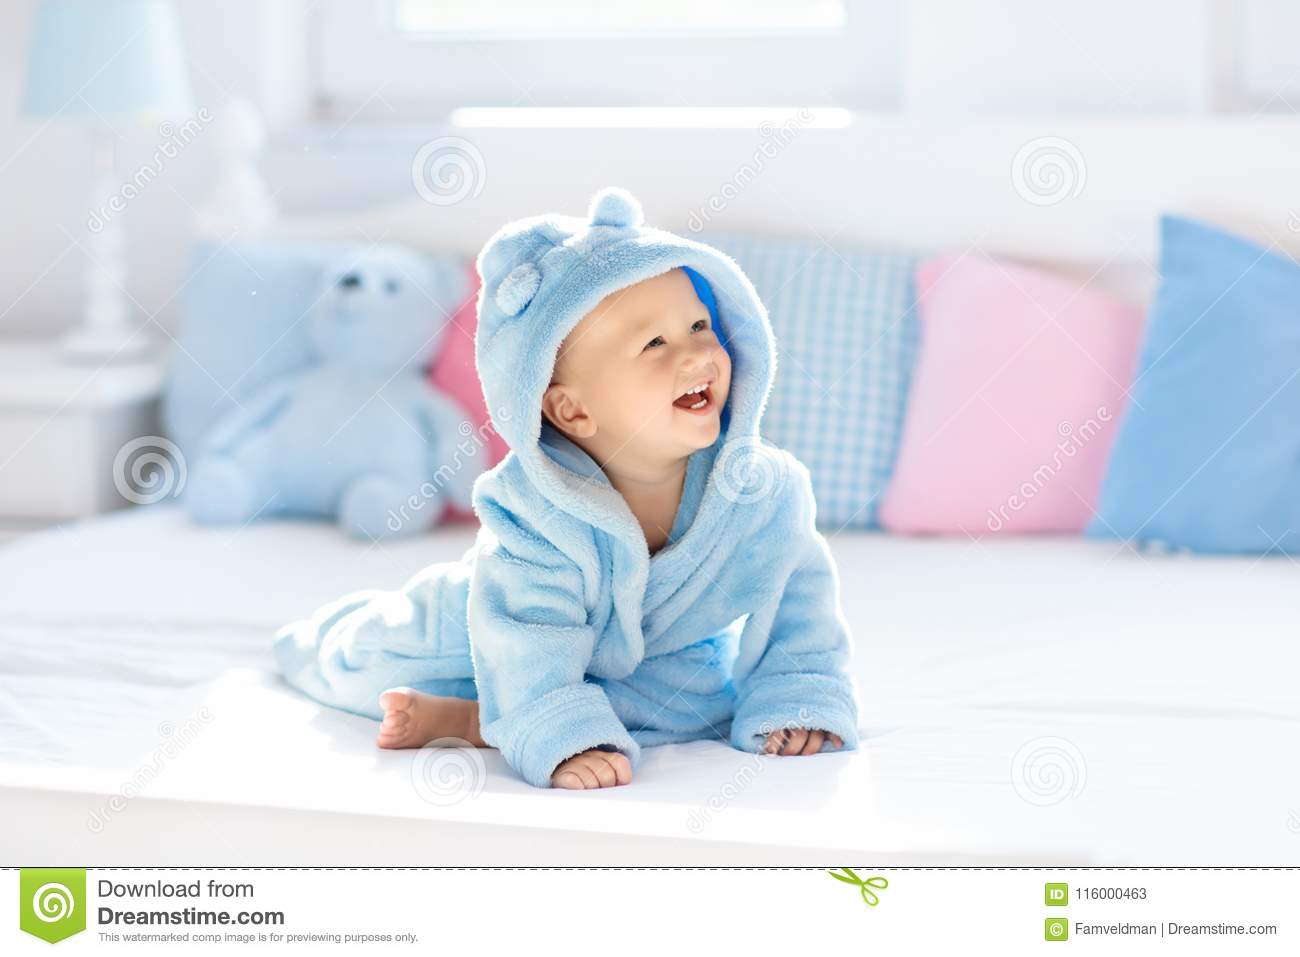 Baby In Bathrobe Or Towel After Bath Stock Image - Image of blue ...